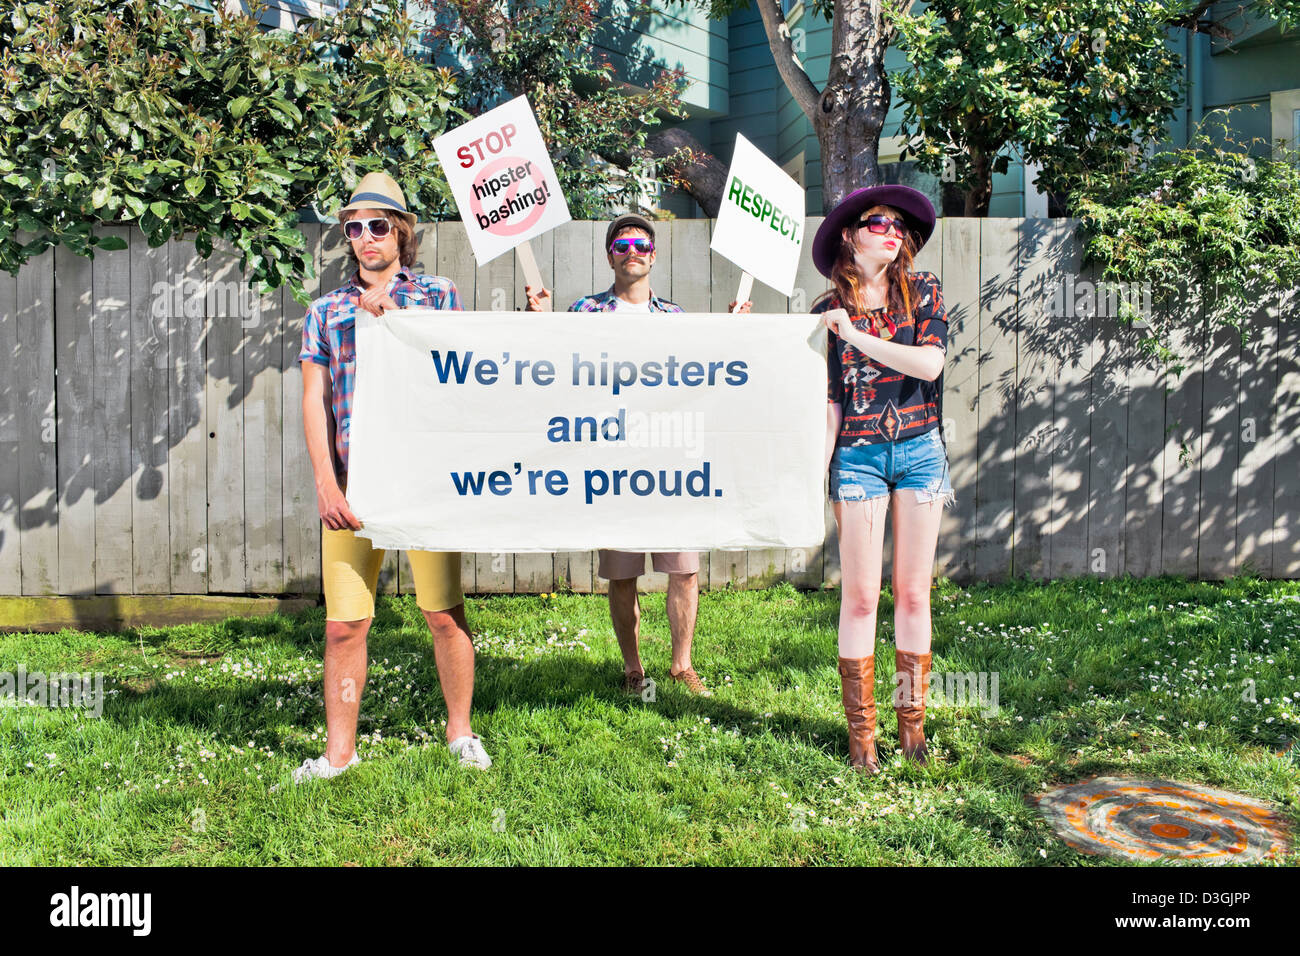 Hipsters and Beatniks - Three hipsters demonstrating against hipster-bashing, holding placards, signs, and banner - Stock Image